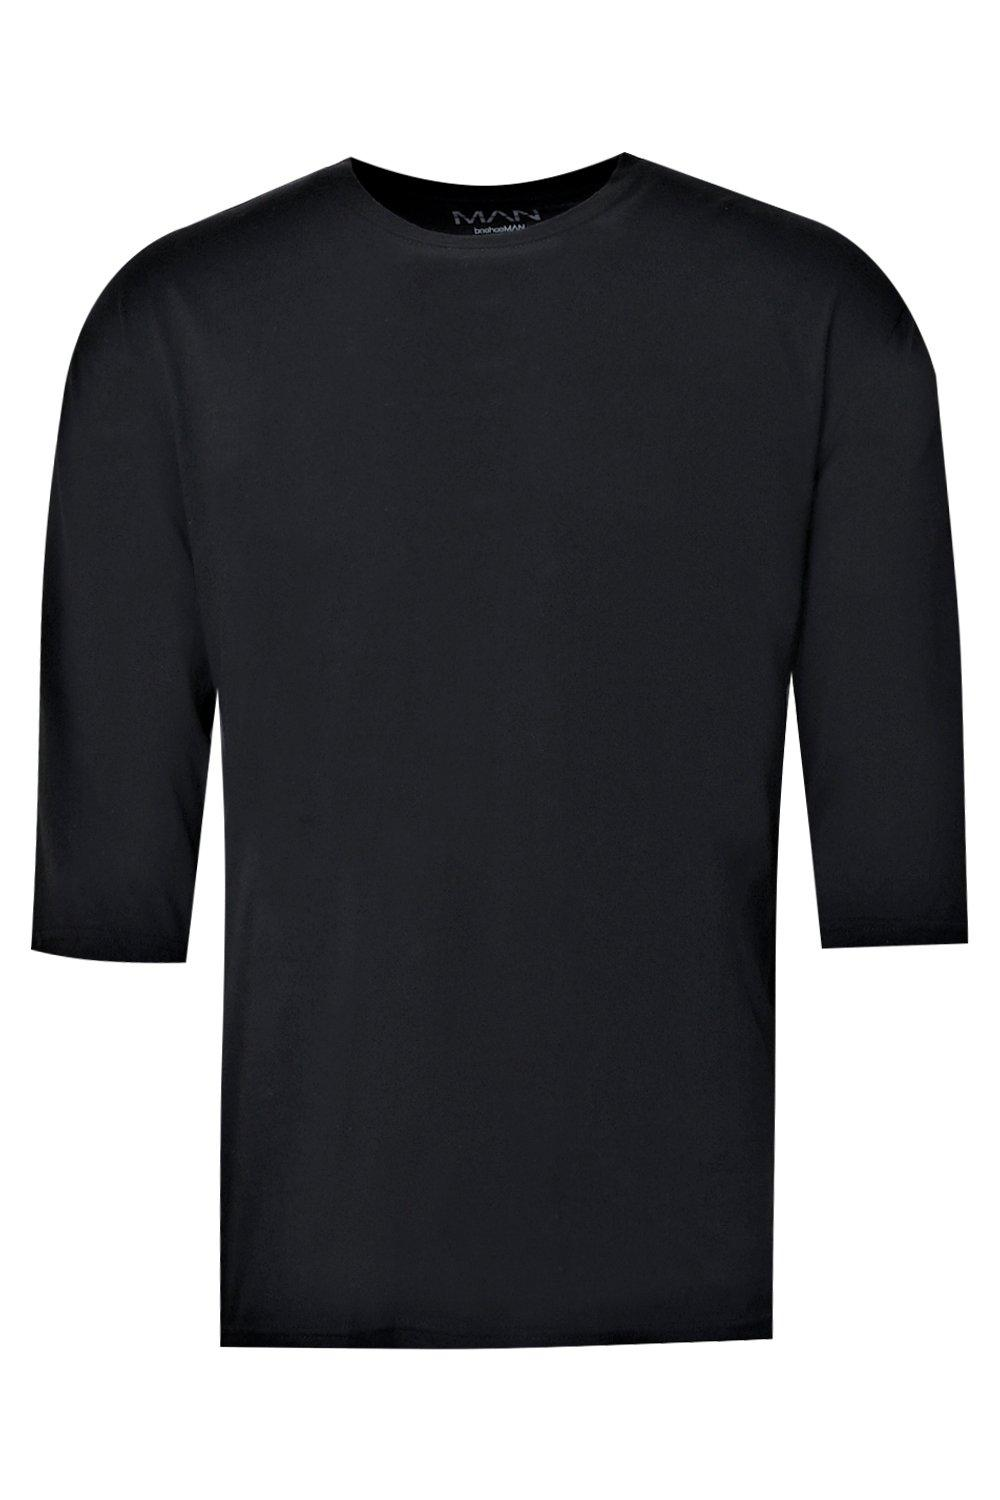 boohooMAN black Loose Fit 3/4 Sleeve T-Shirt